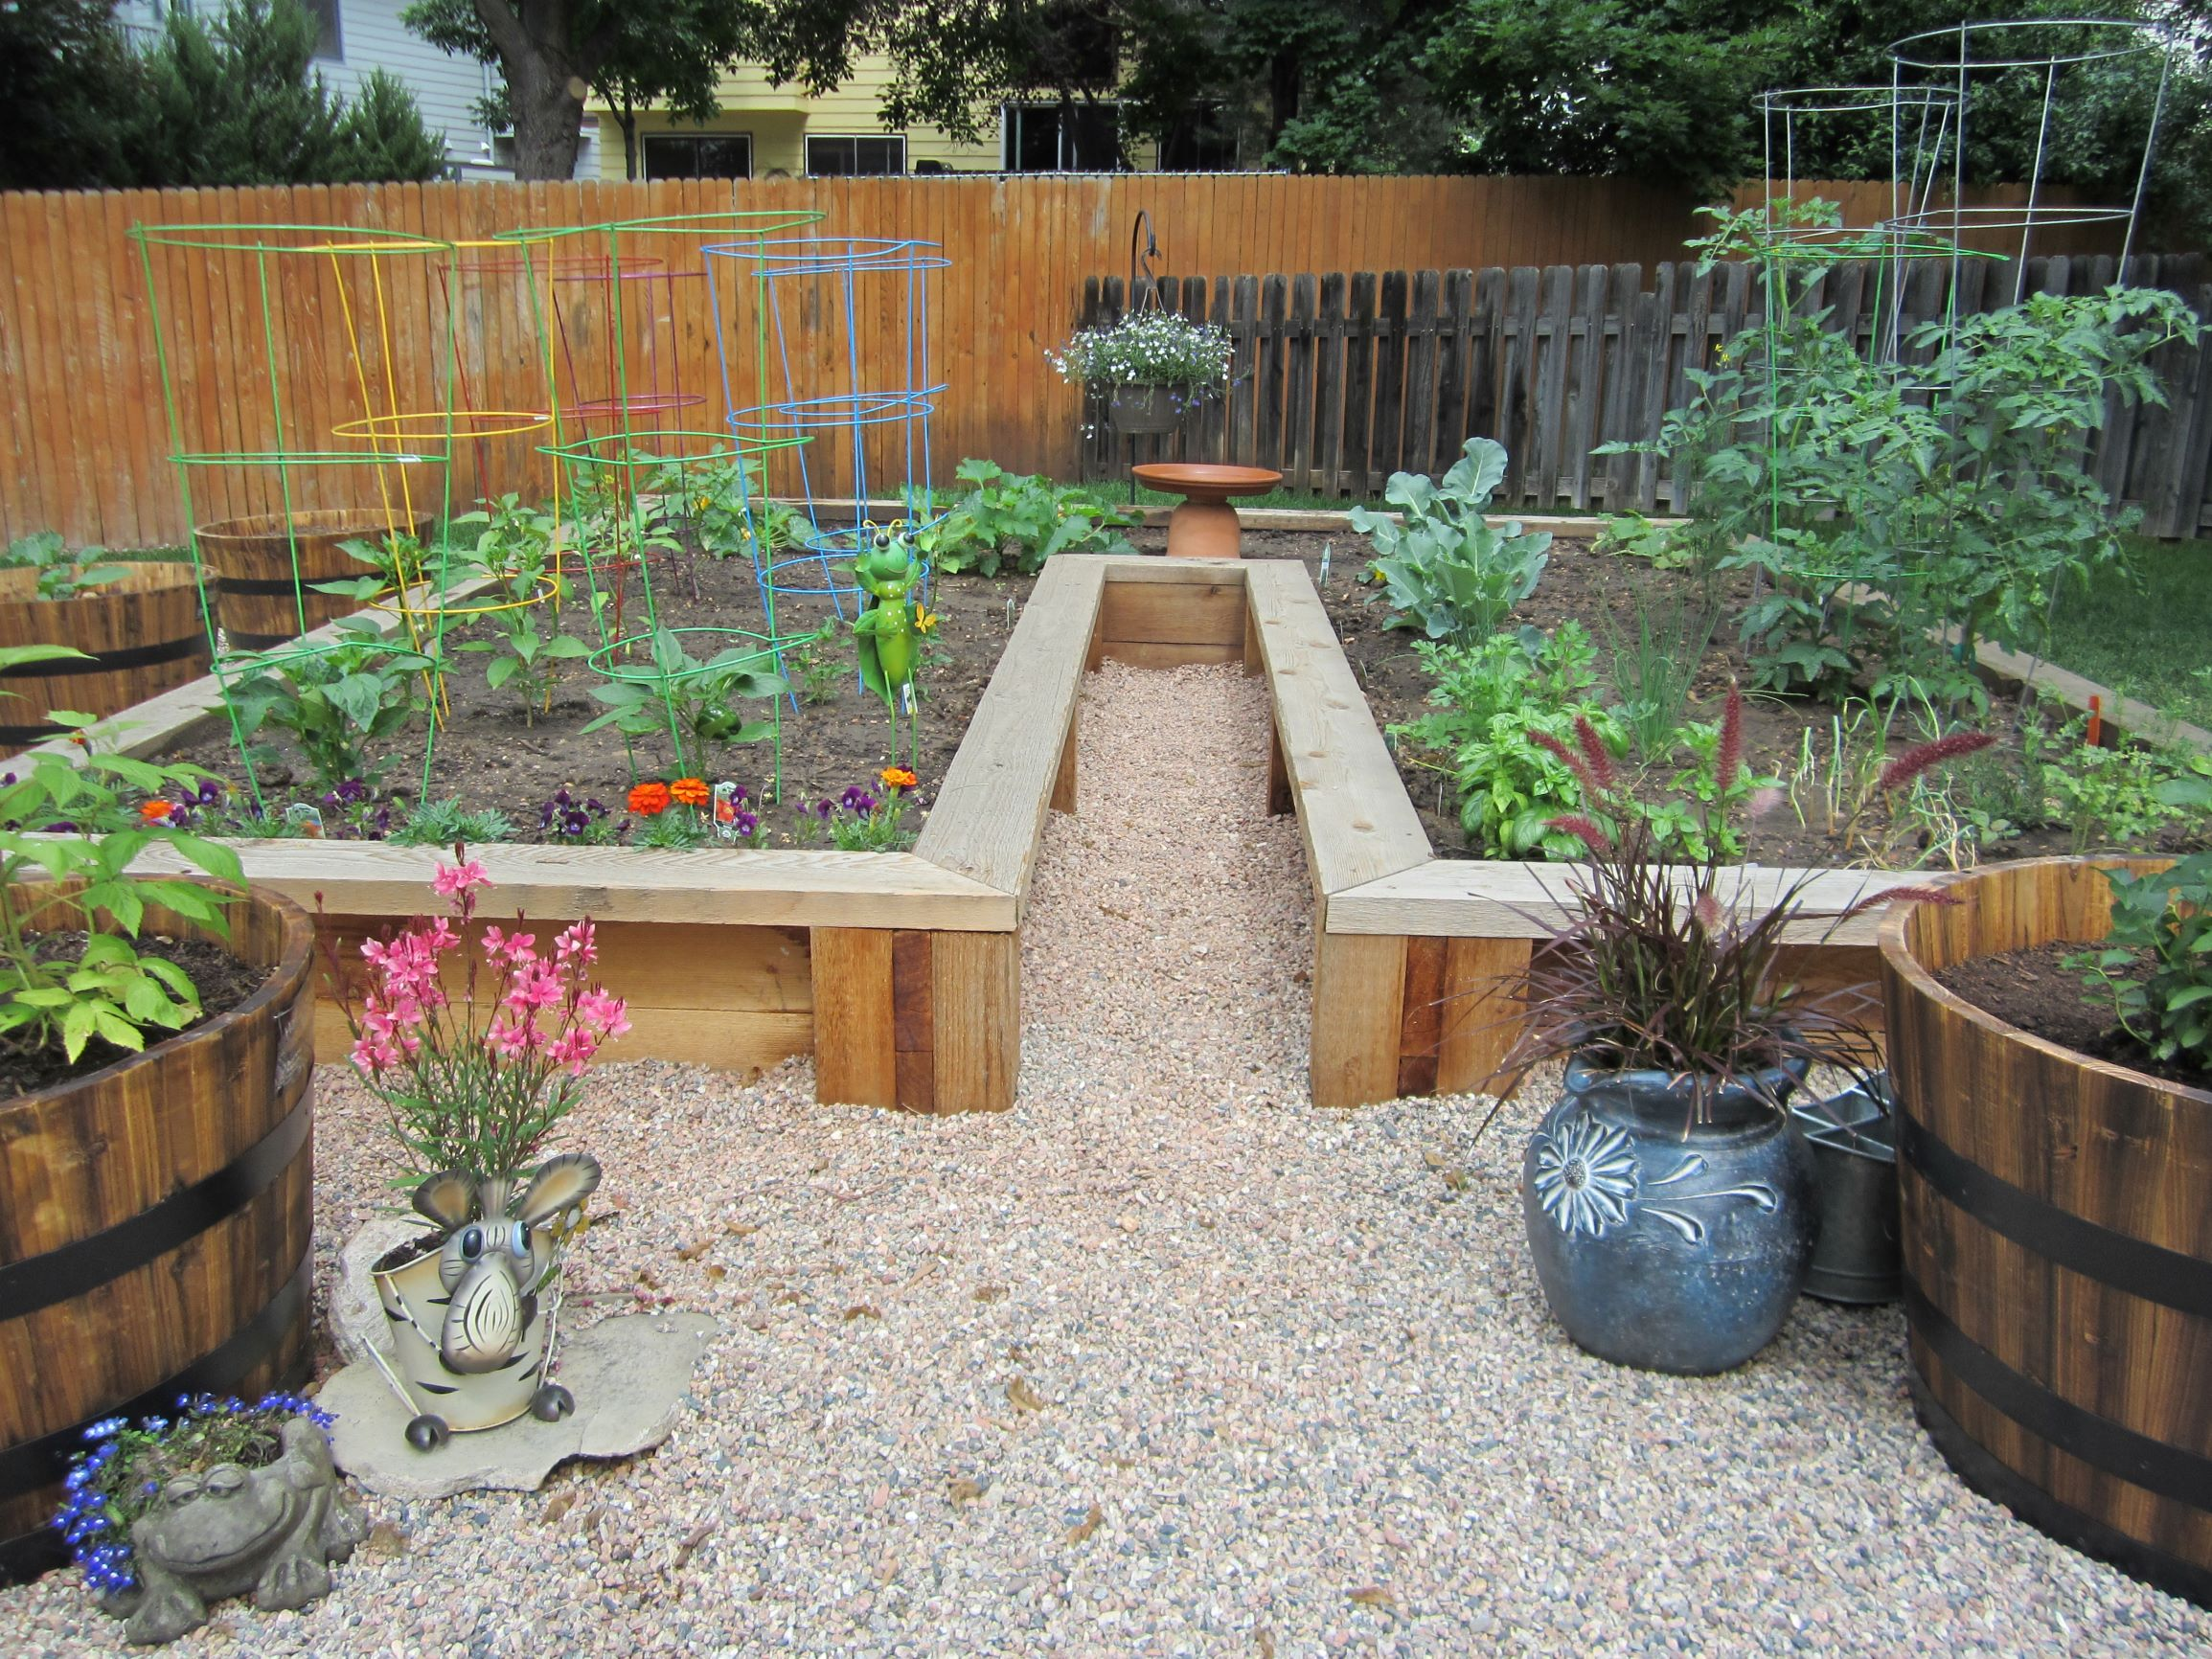 Raised beds on top of pea gravel.